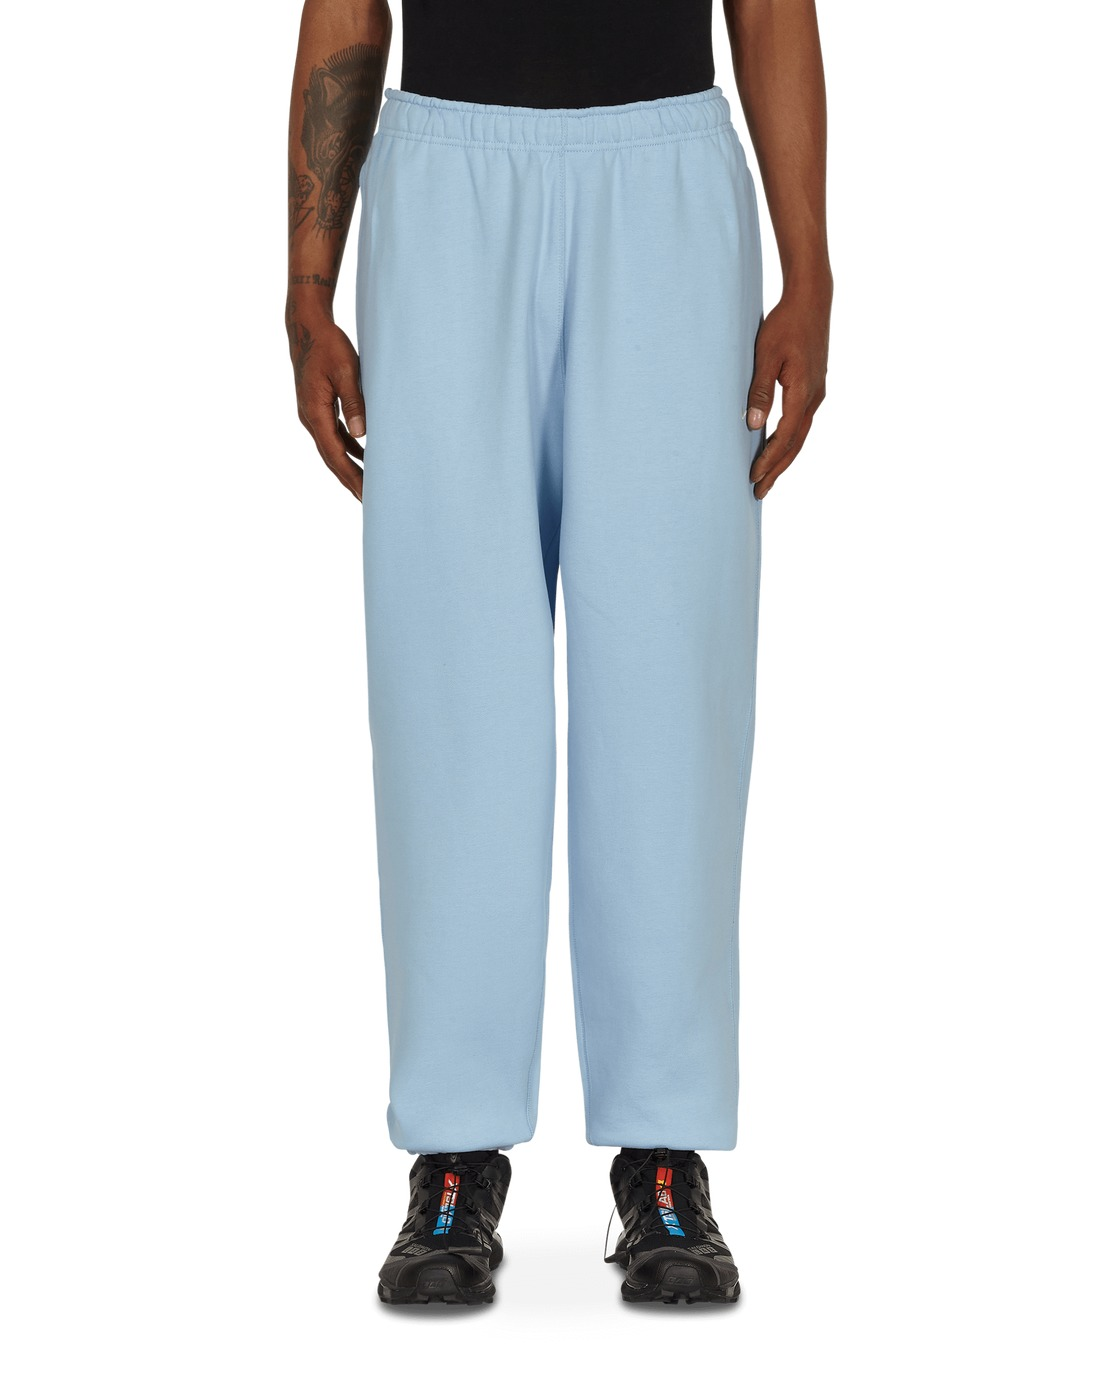 Nike Special Project Logo Sweatpants Psychic Blue/White